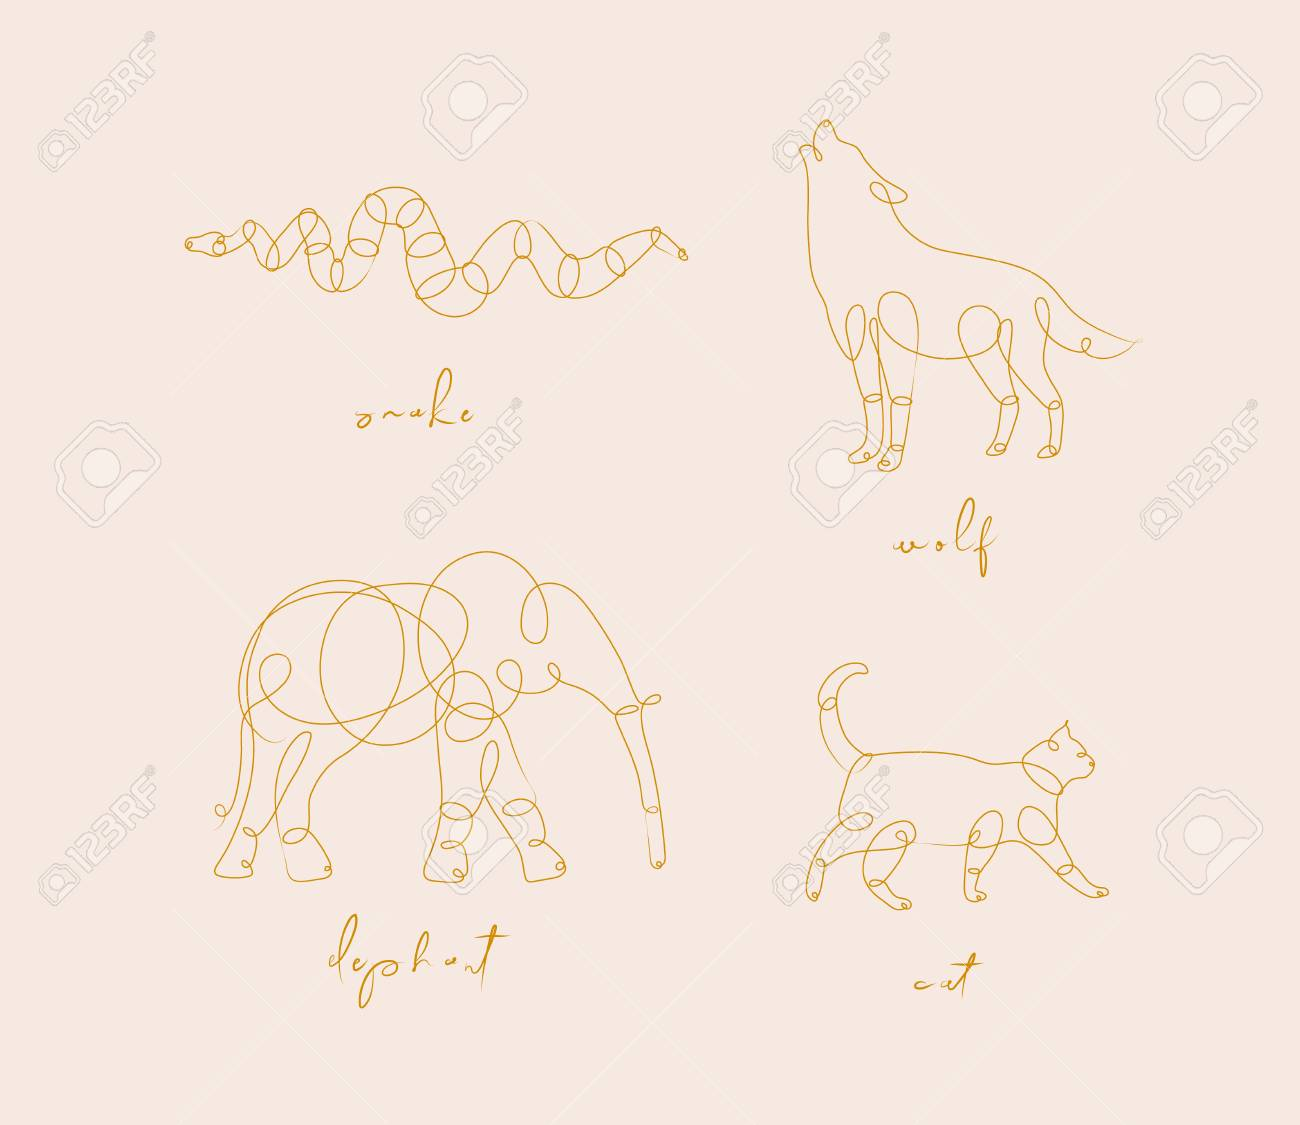 Set of animals snake, wolf, elephant, cat drawing in pen line style on beige - 116941457